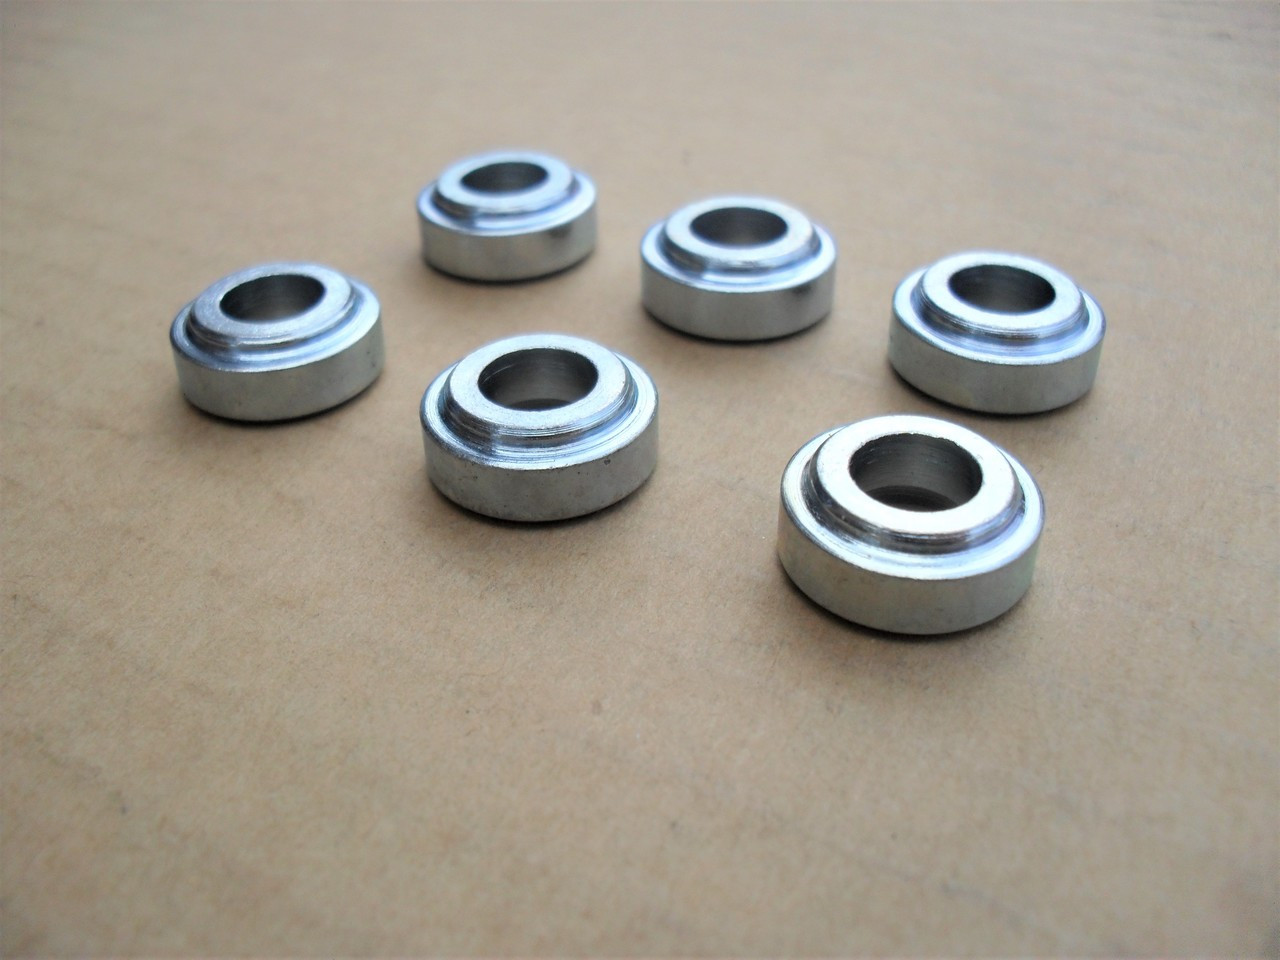 6 Reel and Bedknife Bushings for Craftsman and Mclane Reel Tiff Mower 1106  for mounting bolts, bushing, spacer, spacers